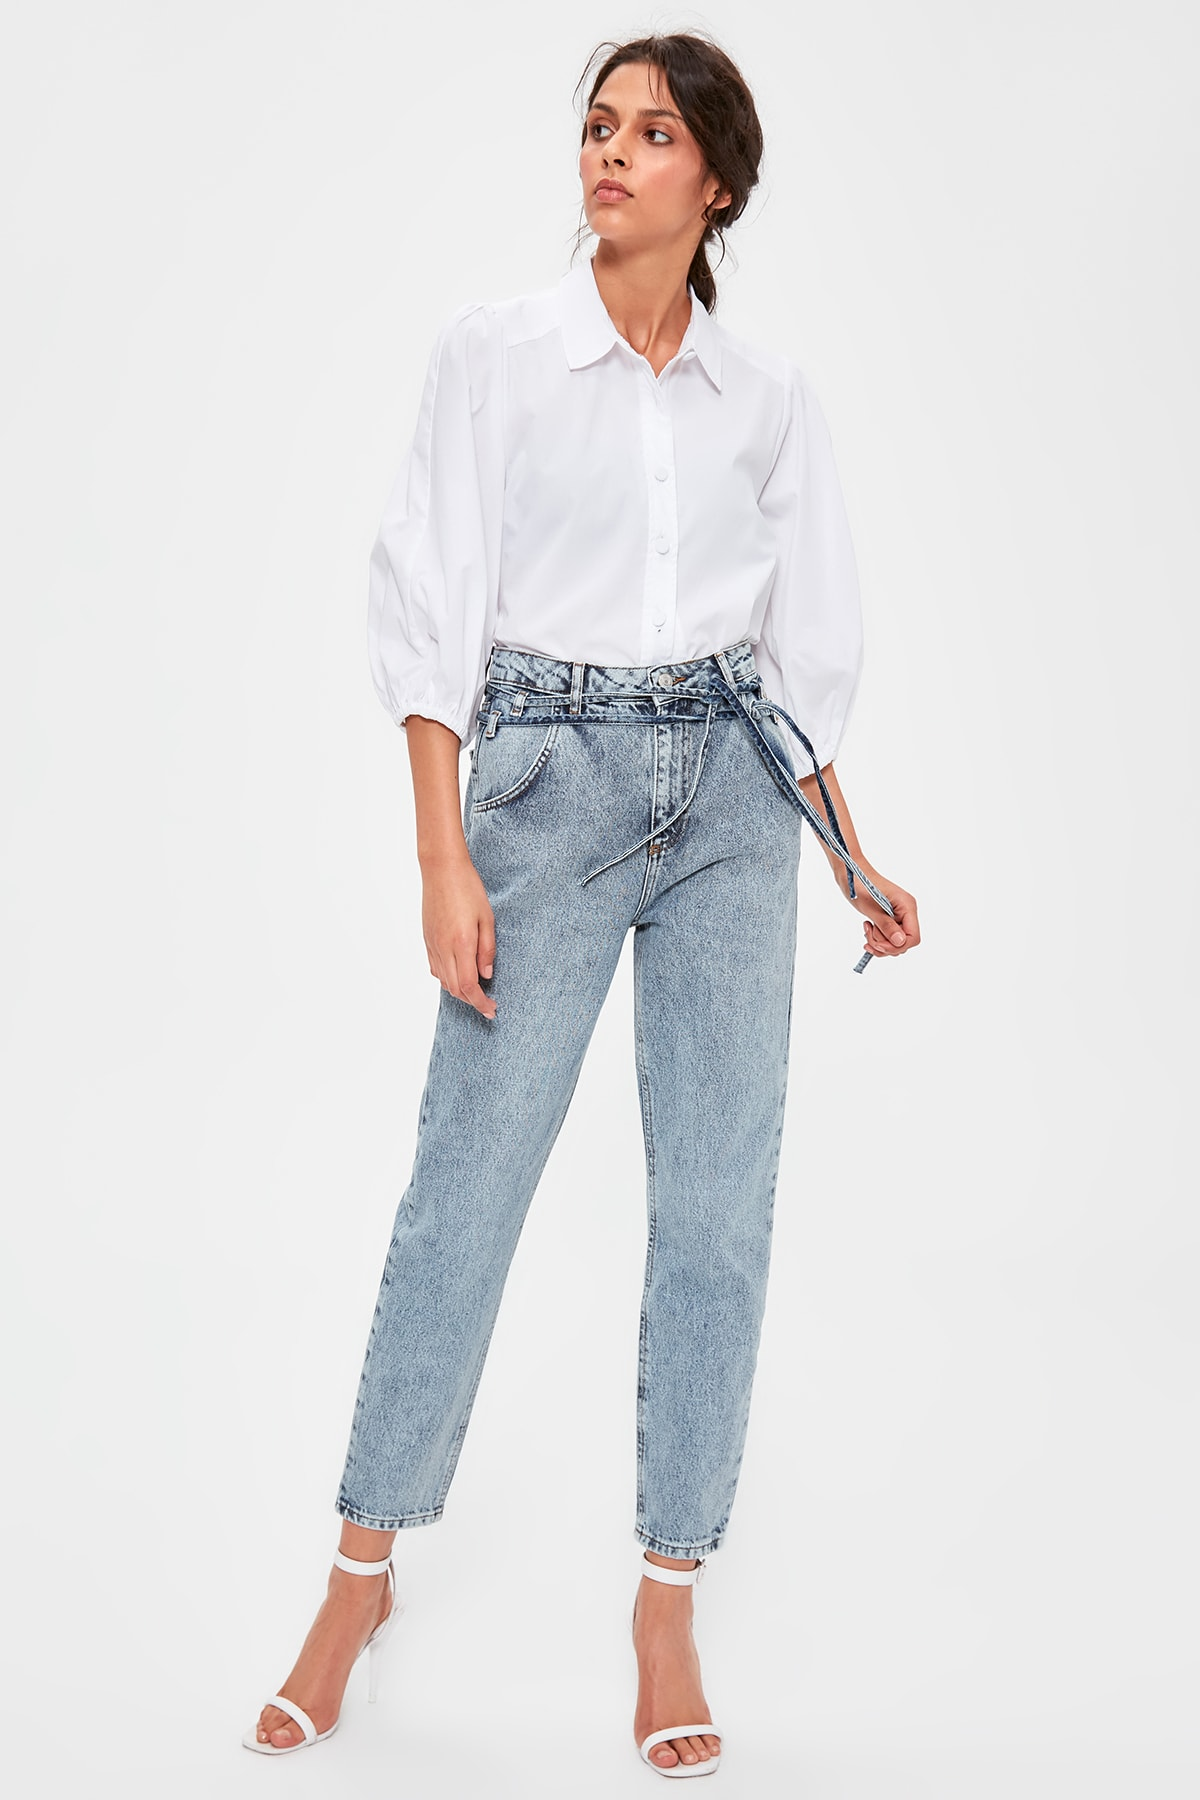 Trendyol Lacing Blue Detailed High Bel Mom Jeans TWOAW20JE0189